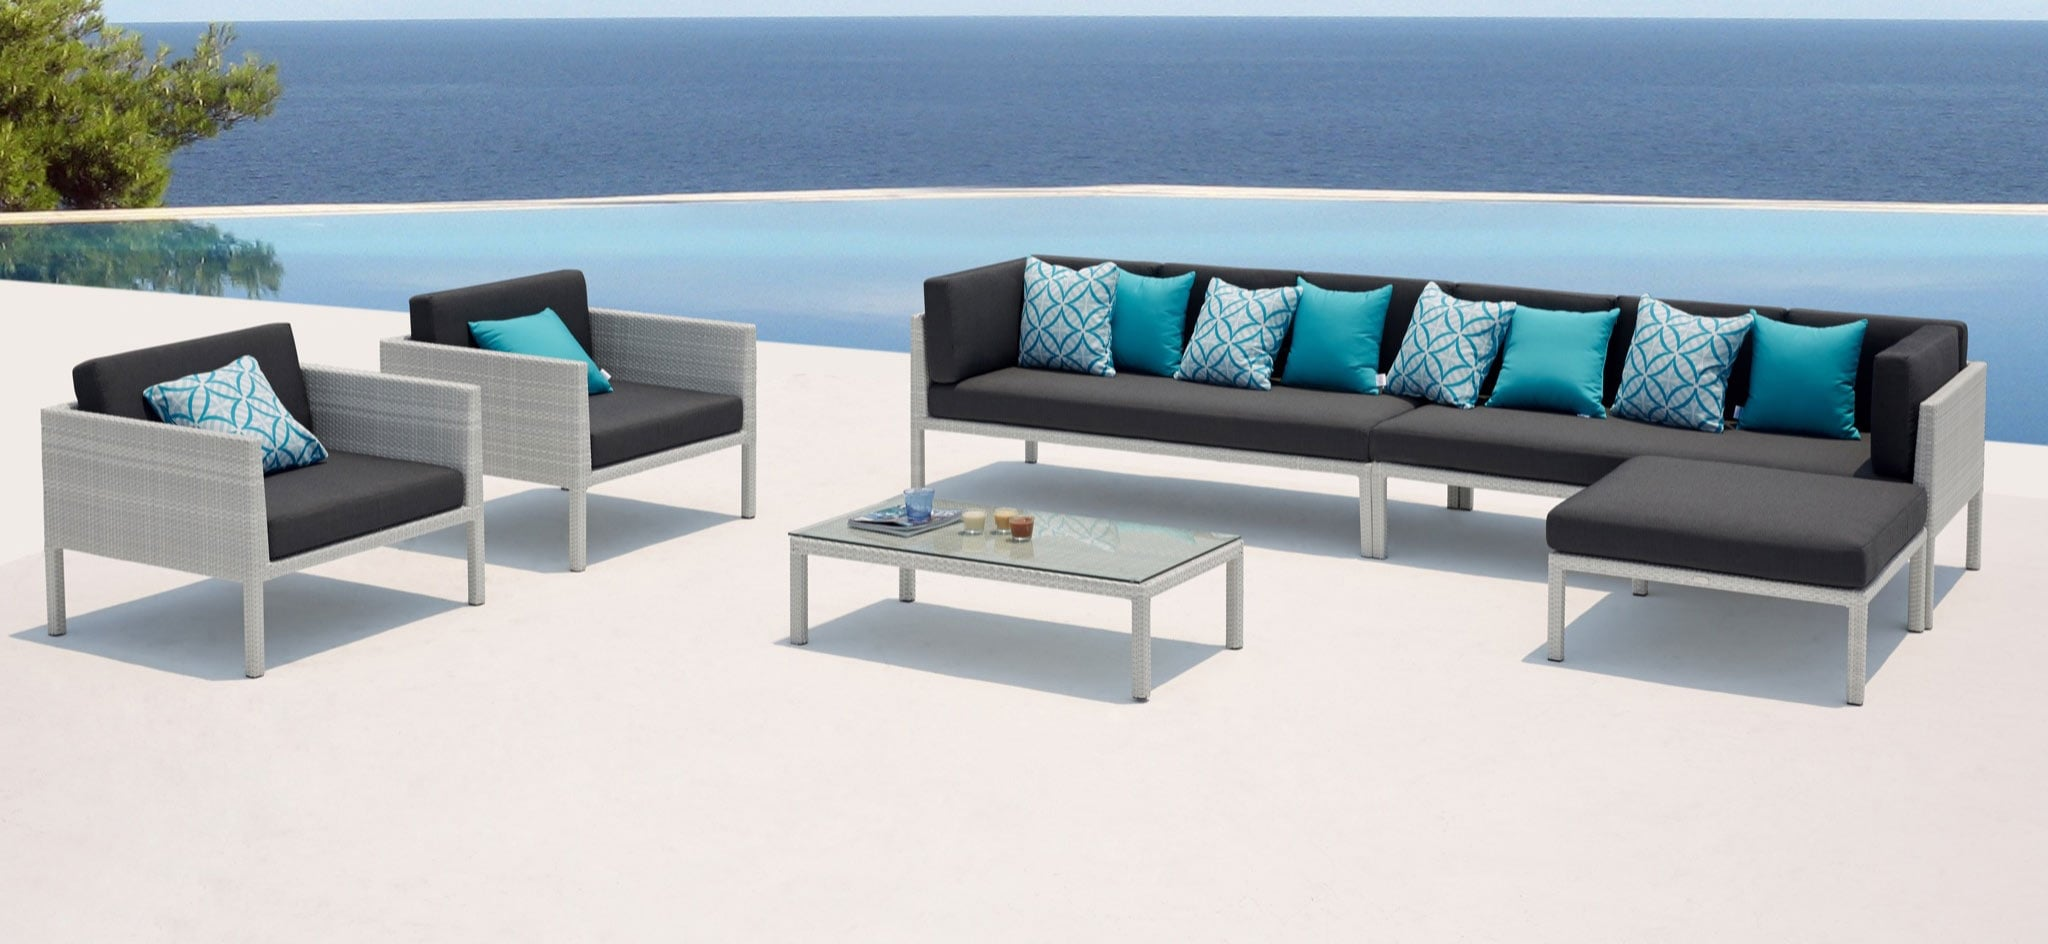 Horizon Wicker Outdoor Lounge